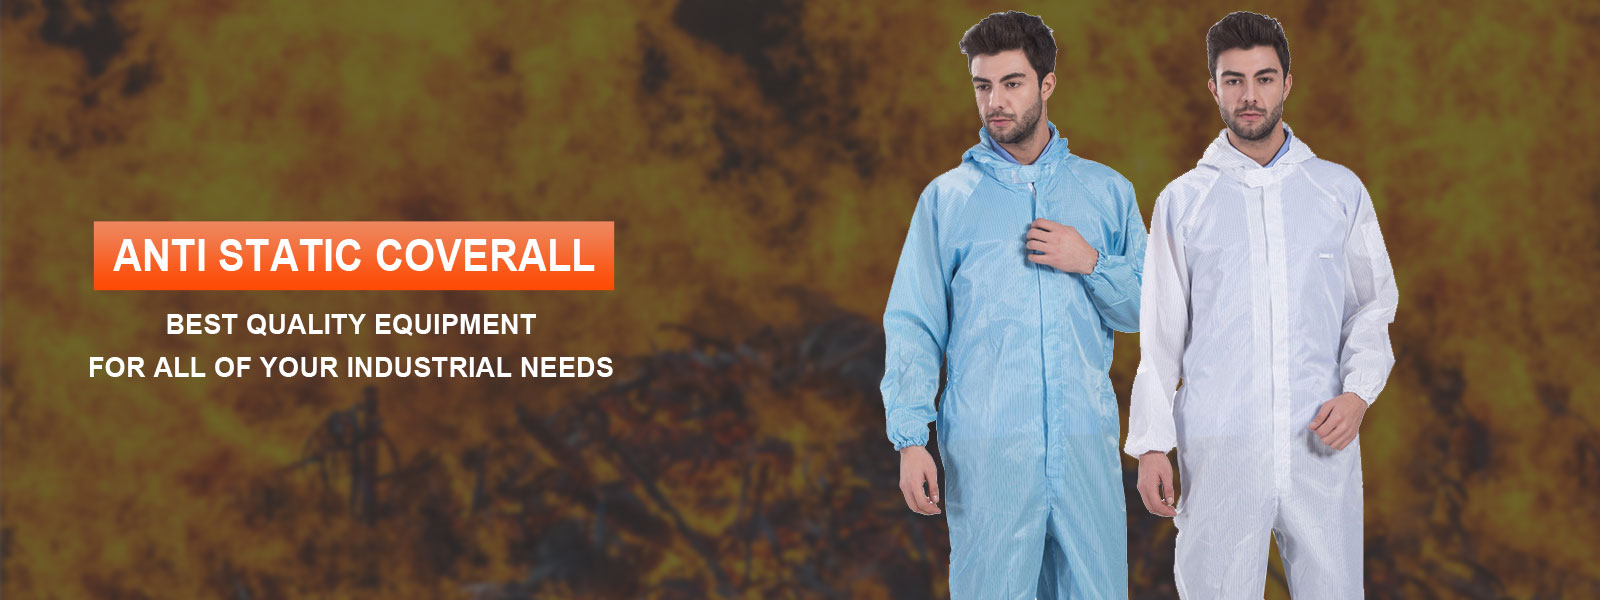 Anti Static Coverall Manufacturers in Algeria